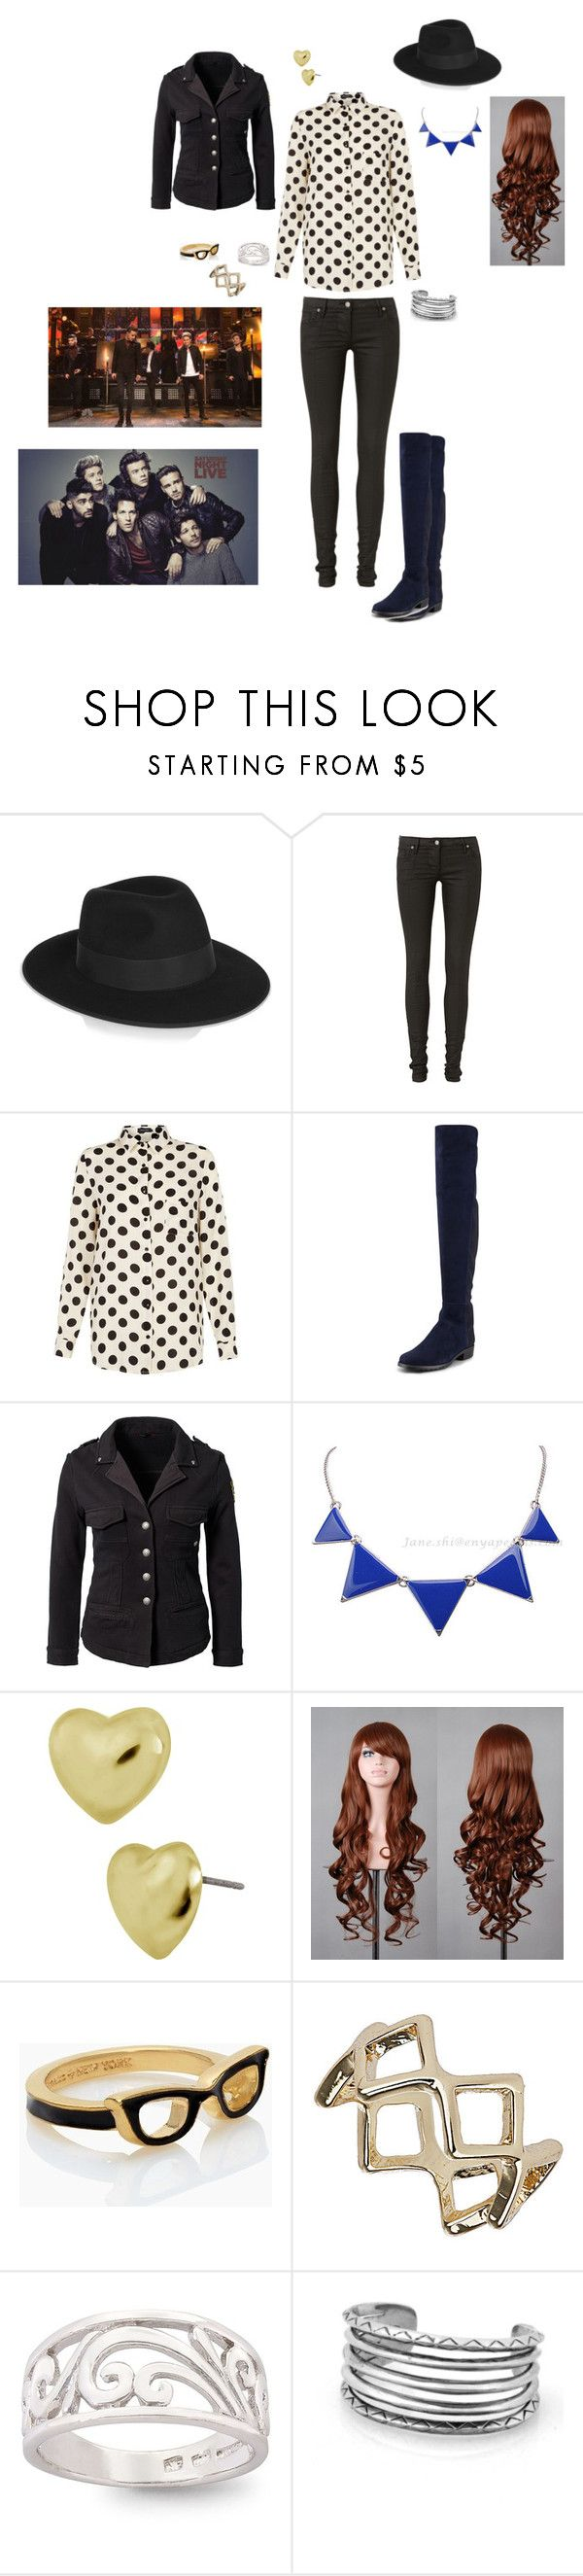 """SNL"" by smthin0-0diffrnt ❤ liked on Polyvore featuring beauty, Karl Lagerfeld, sass & bide, Stuart Weitzman, RA-RE, Betsey Johnson, Kate Spade, Topshop, Bridge Jewelry and House of Harlow 1960"